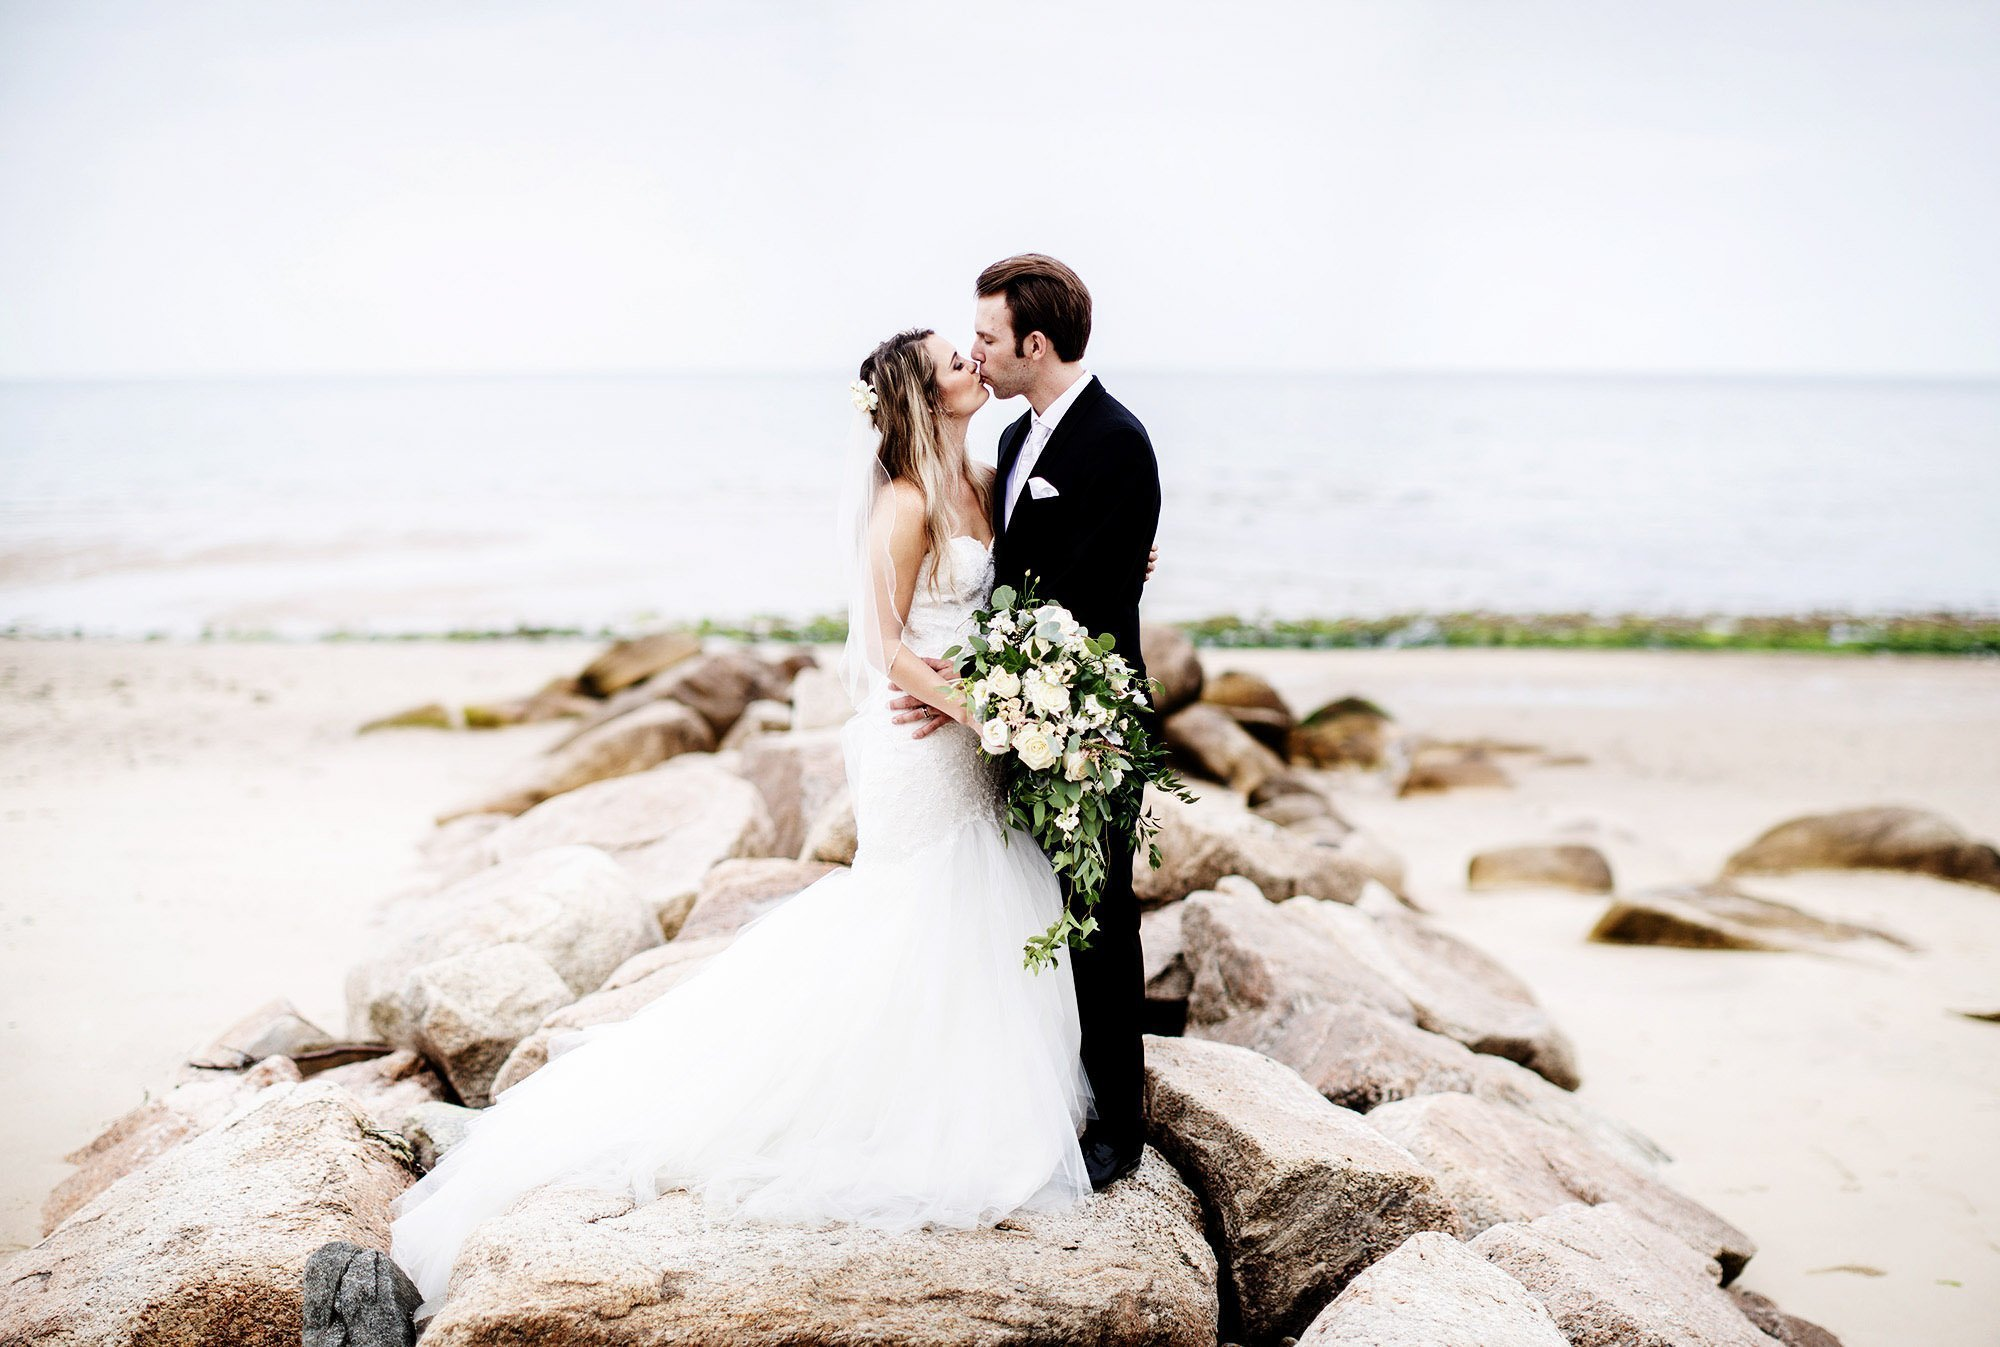 The couple kiss on the rocks during their White Cliffs Country Club wedding.